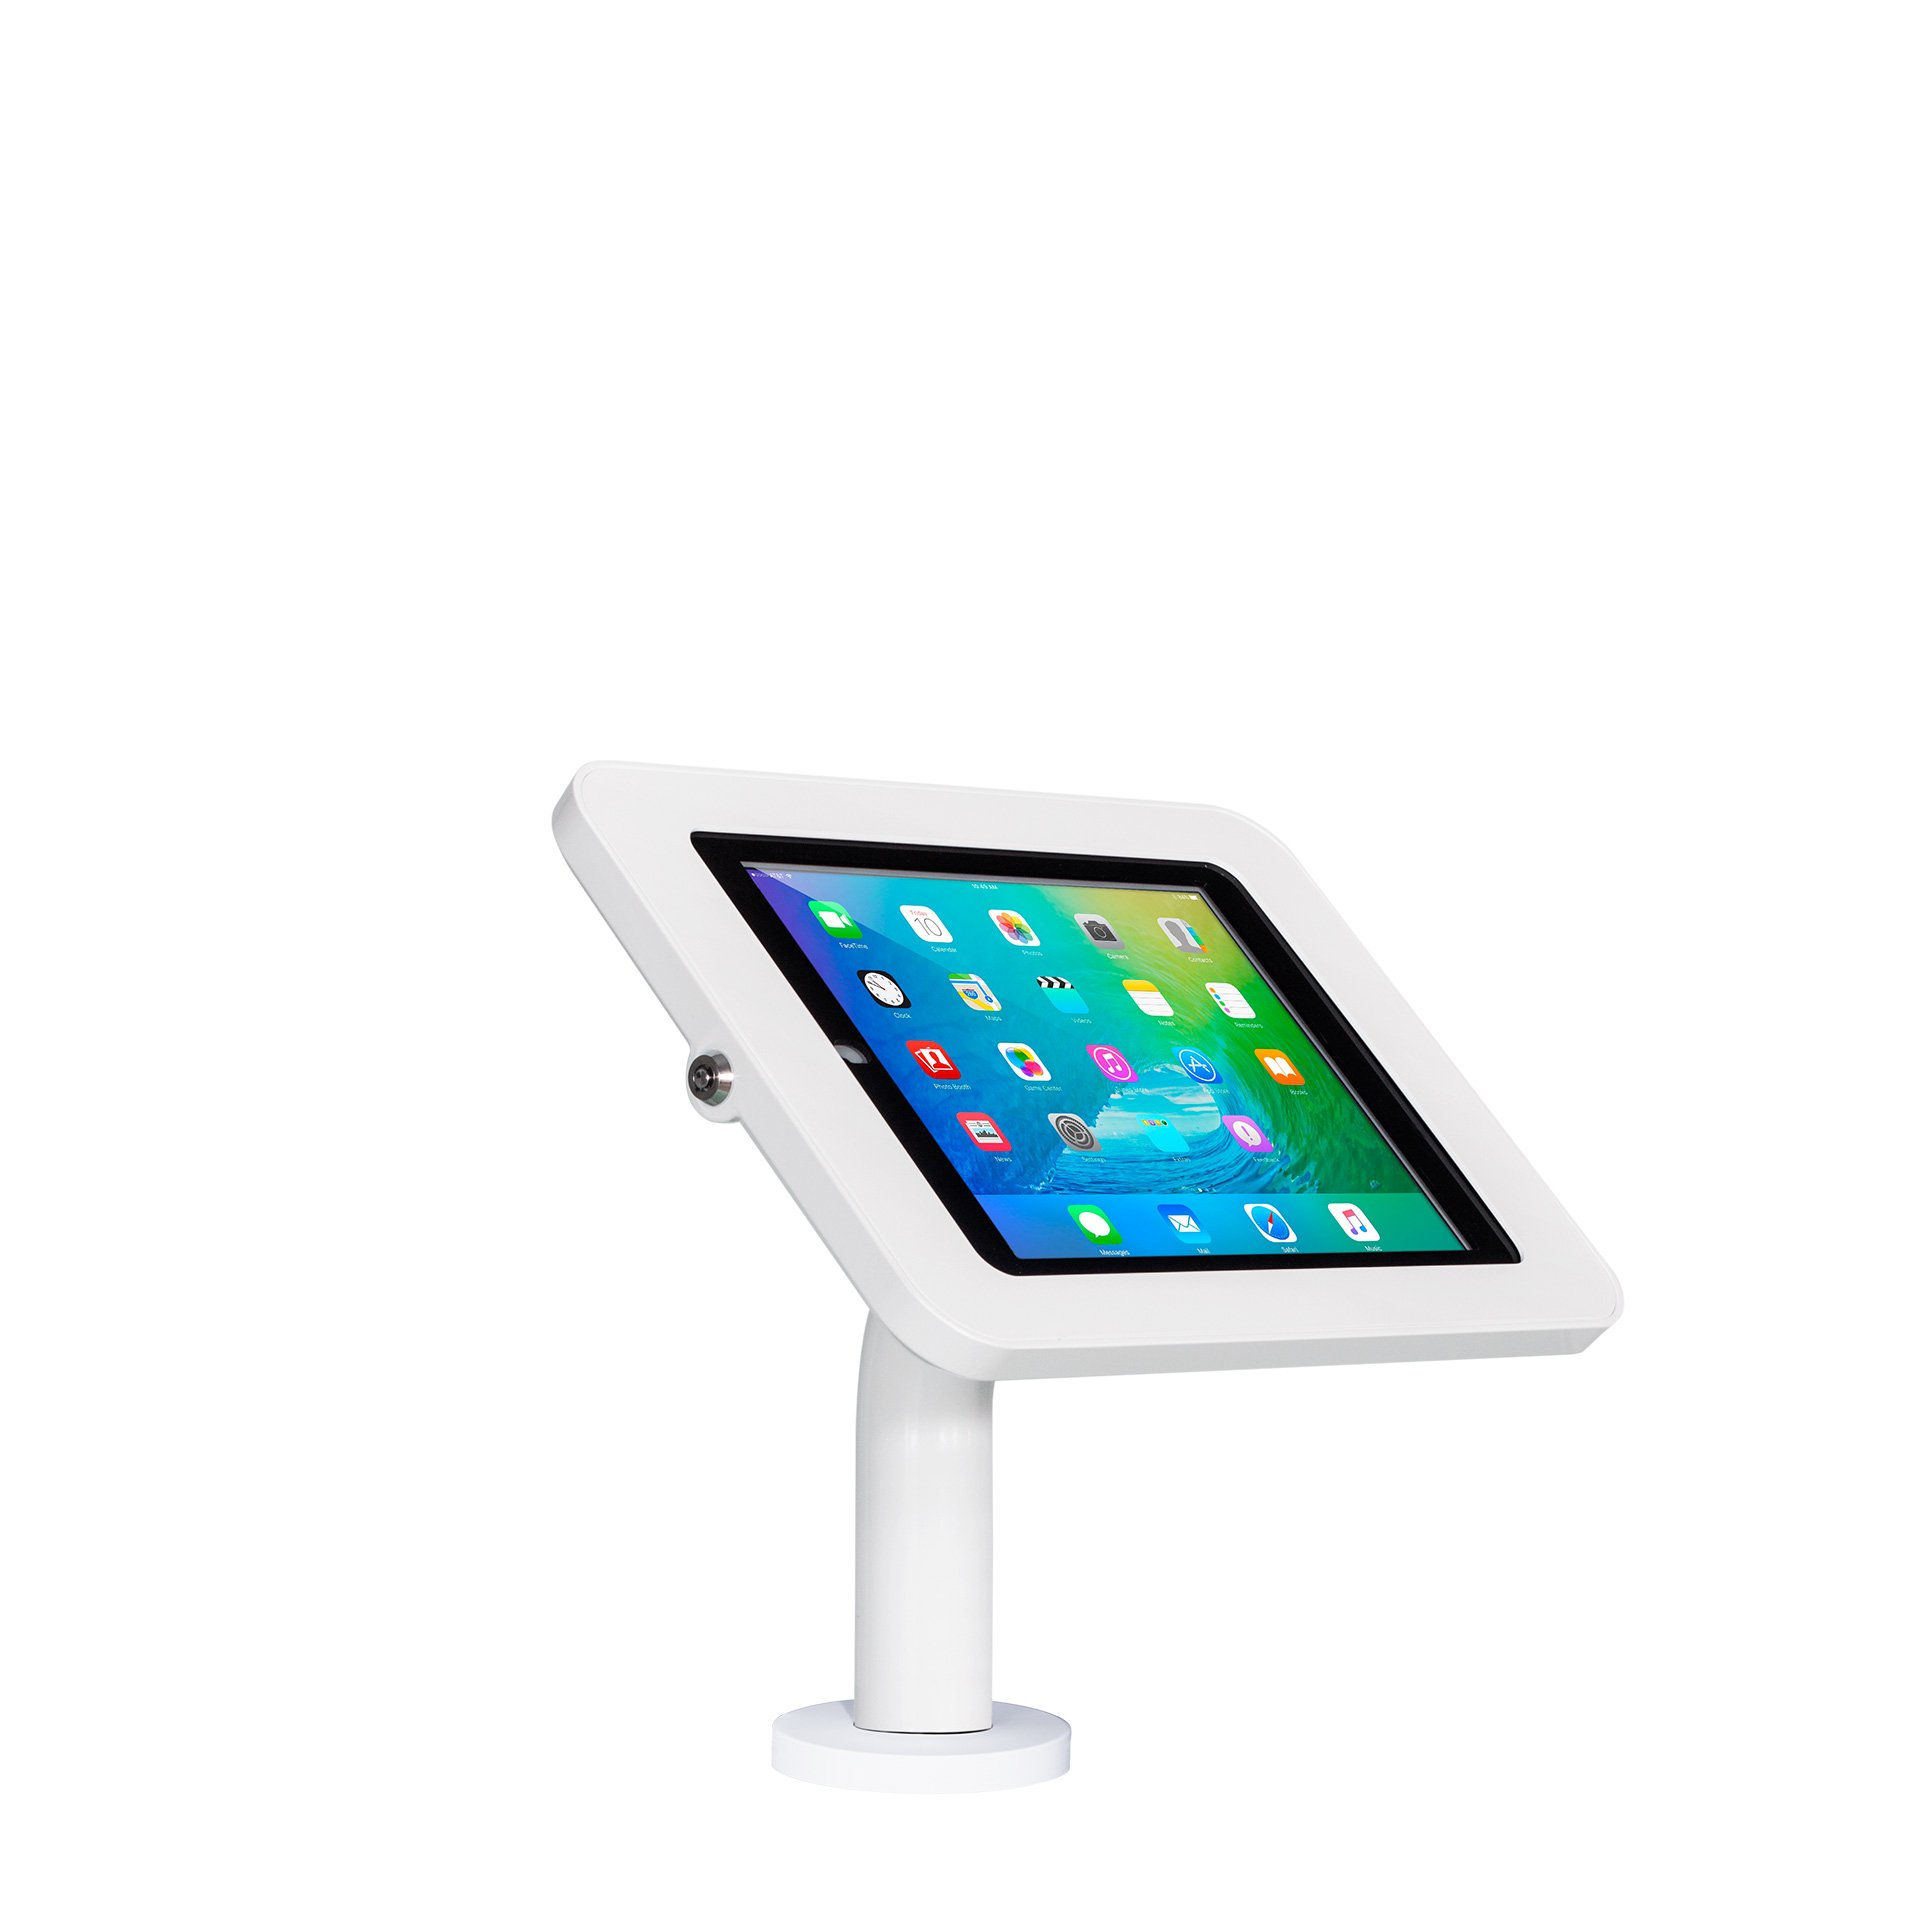 The Joy Factory Elevate II Wall/Countertop Retail Kiosk for iPad Pro 9.7'' and iPad Air 2 (KAA203W)